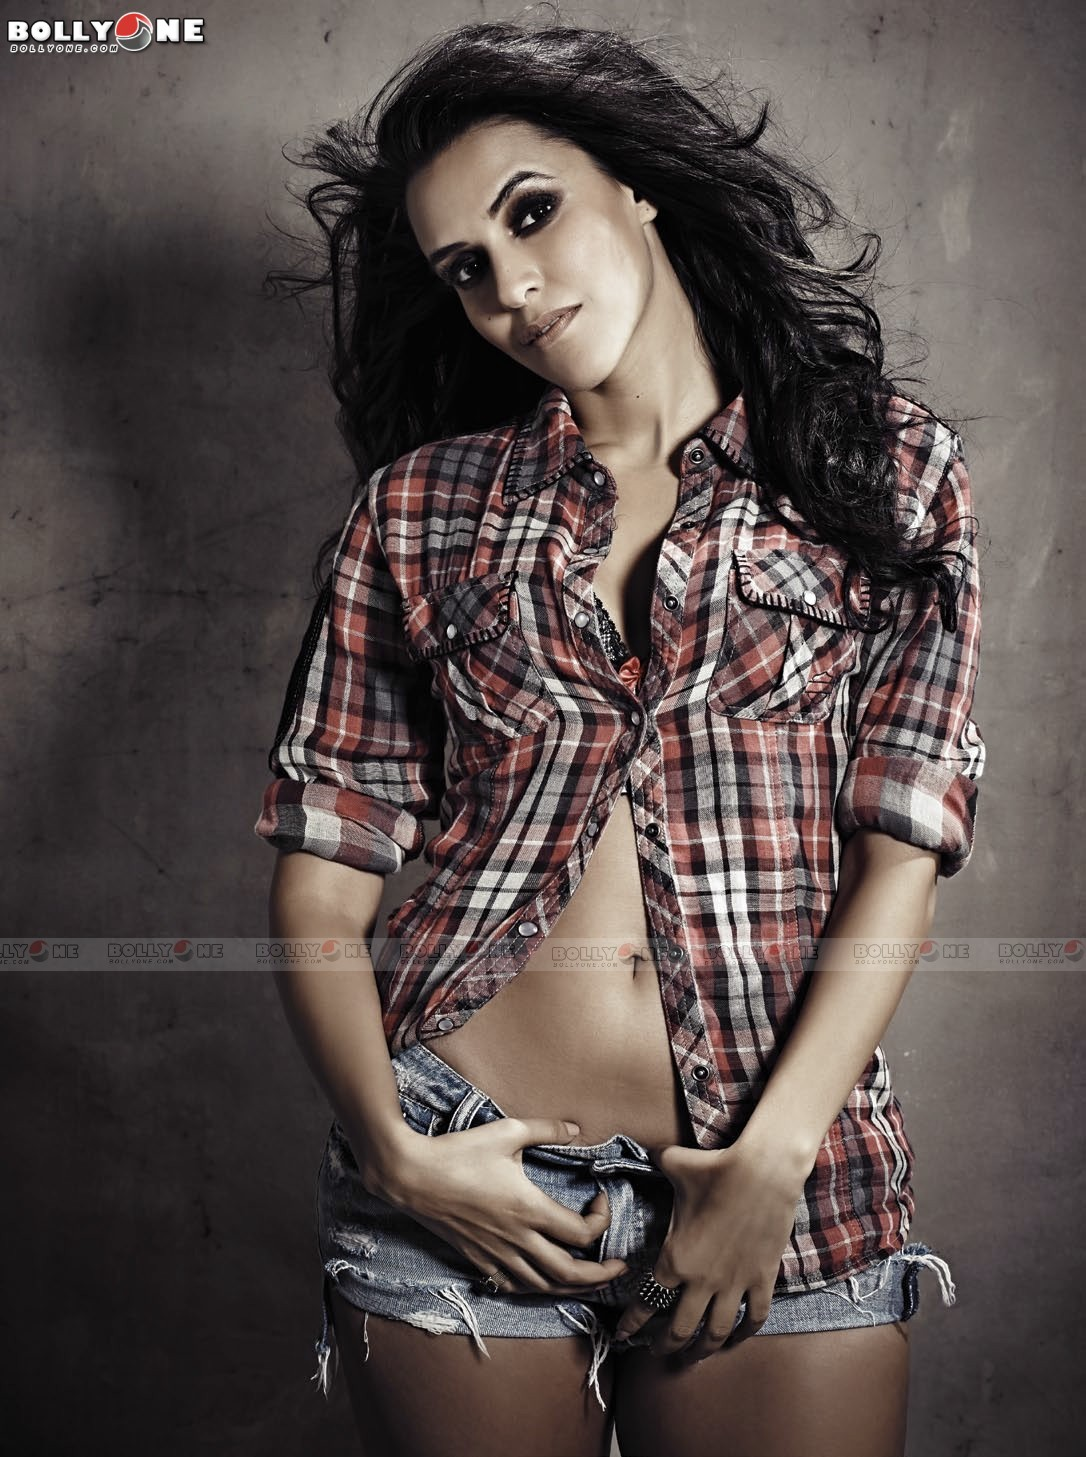 Hot Neha Dhupia  Fhm India Magazine Feb 2013 Hq -1264